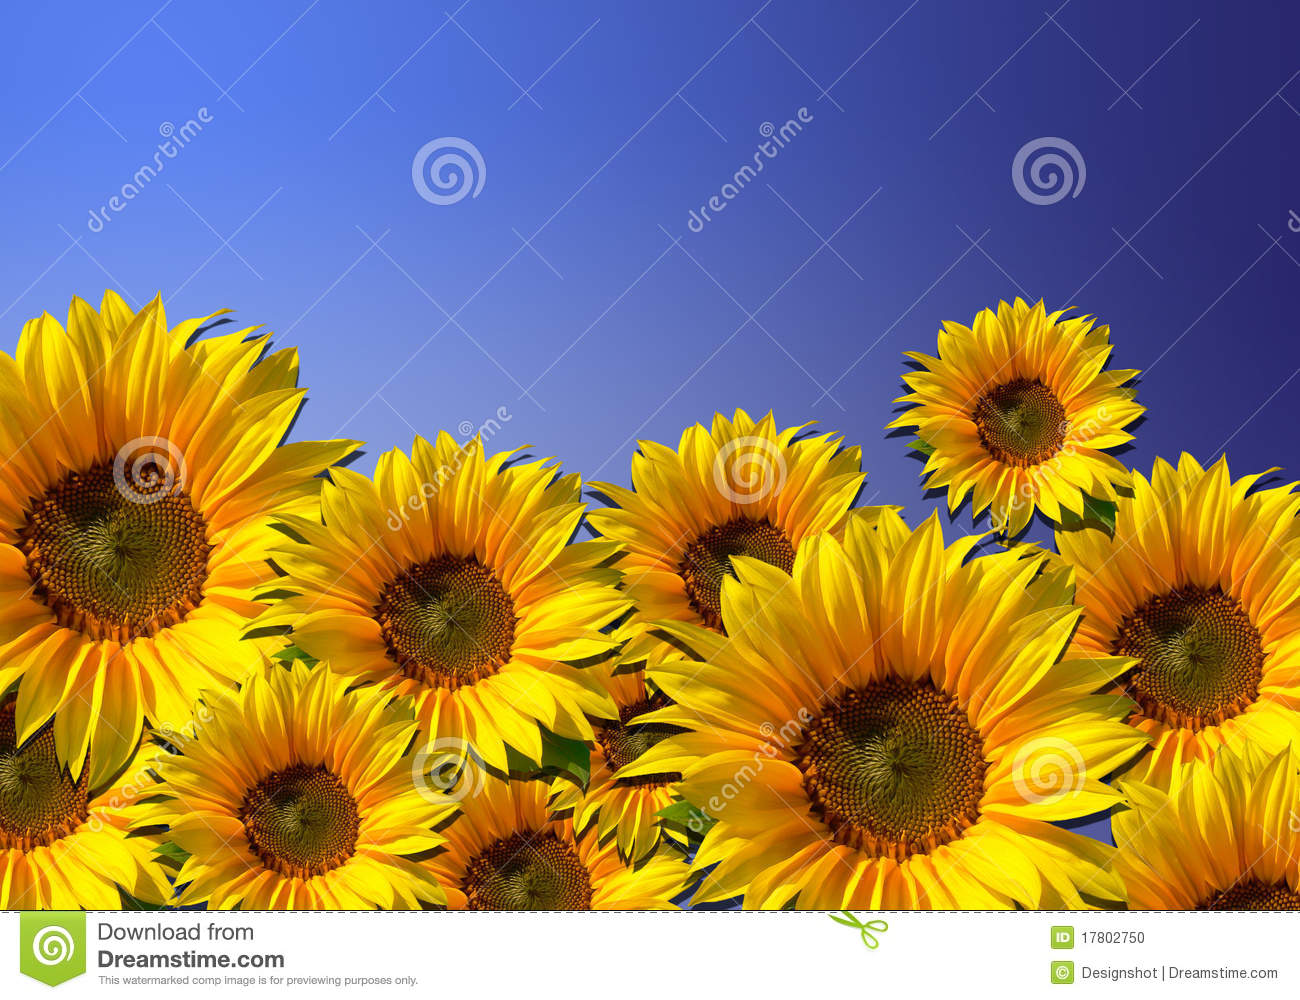 Sunflowers flower background with blue sky stock photo image